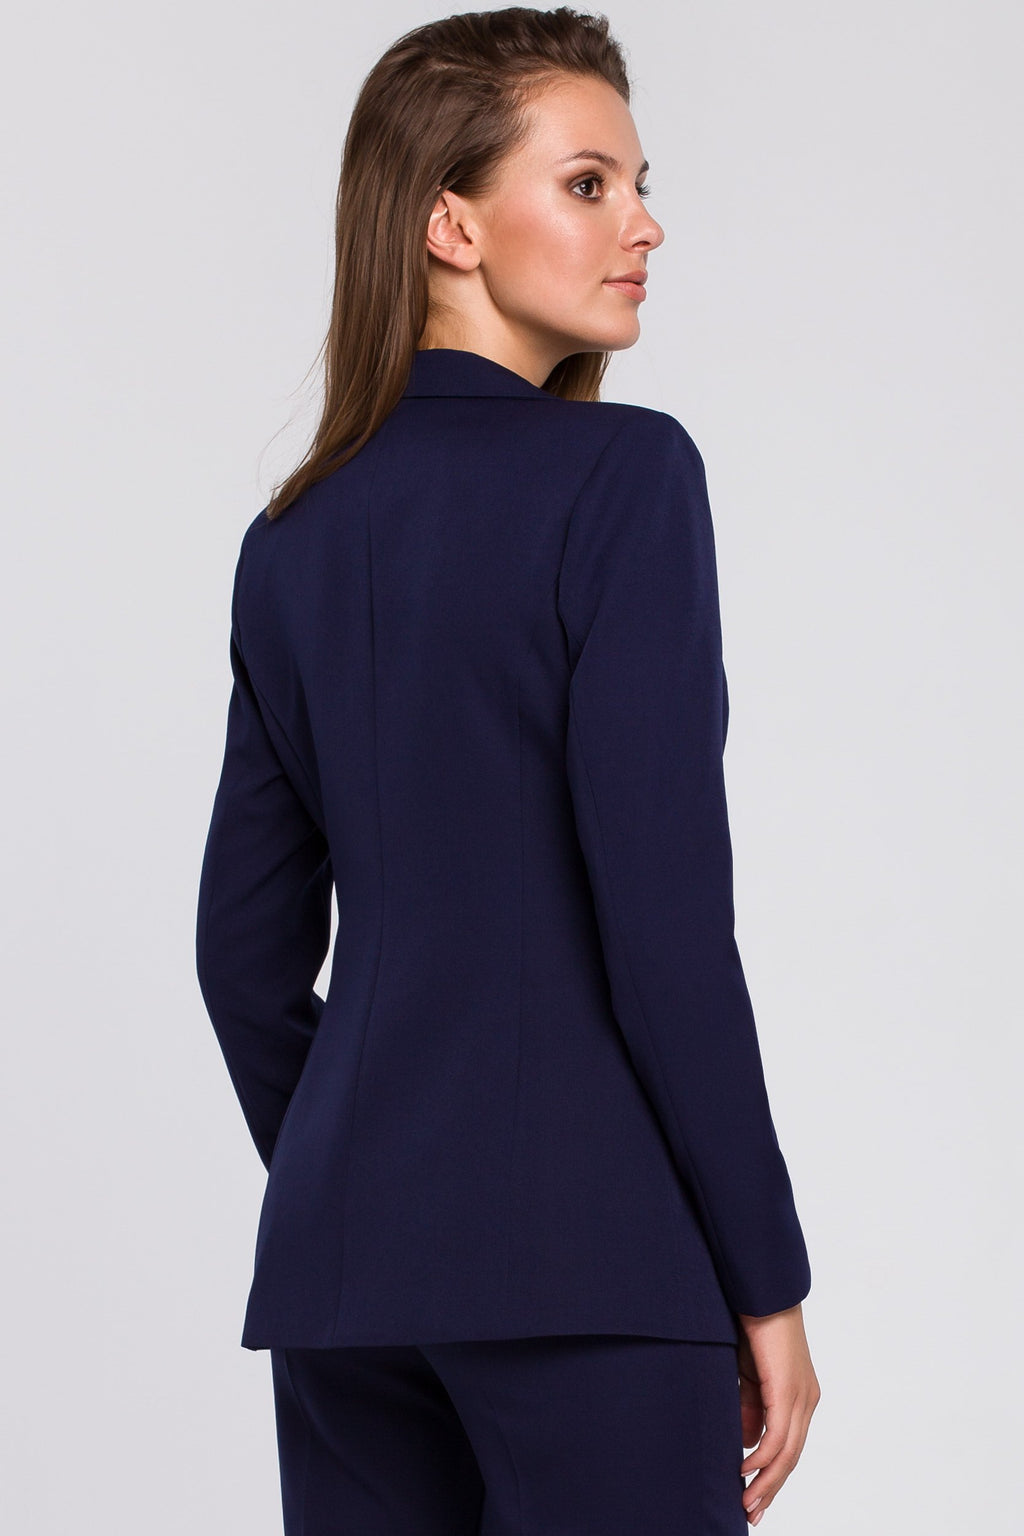 Single Button Navy Blue Blazer - So Chic Boutique